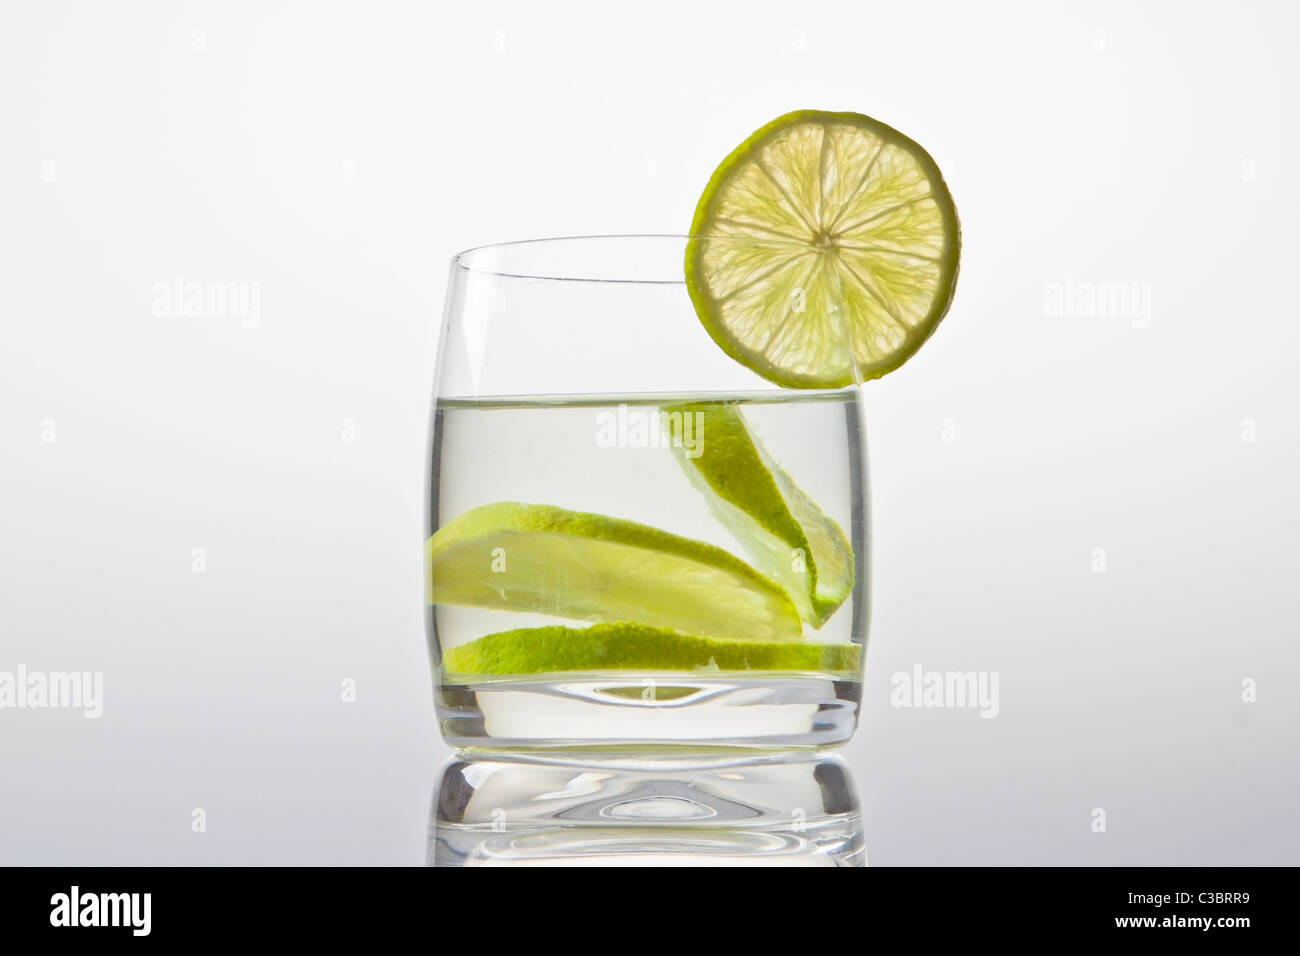 glass with lemonade and lemon slice - Stock Image